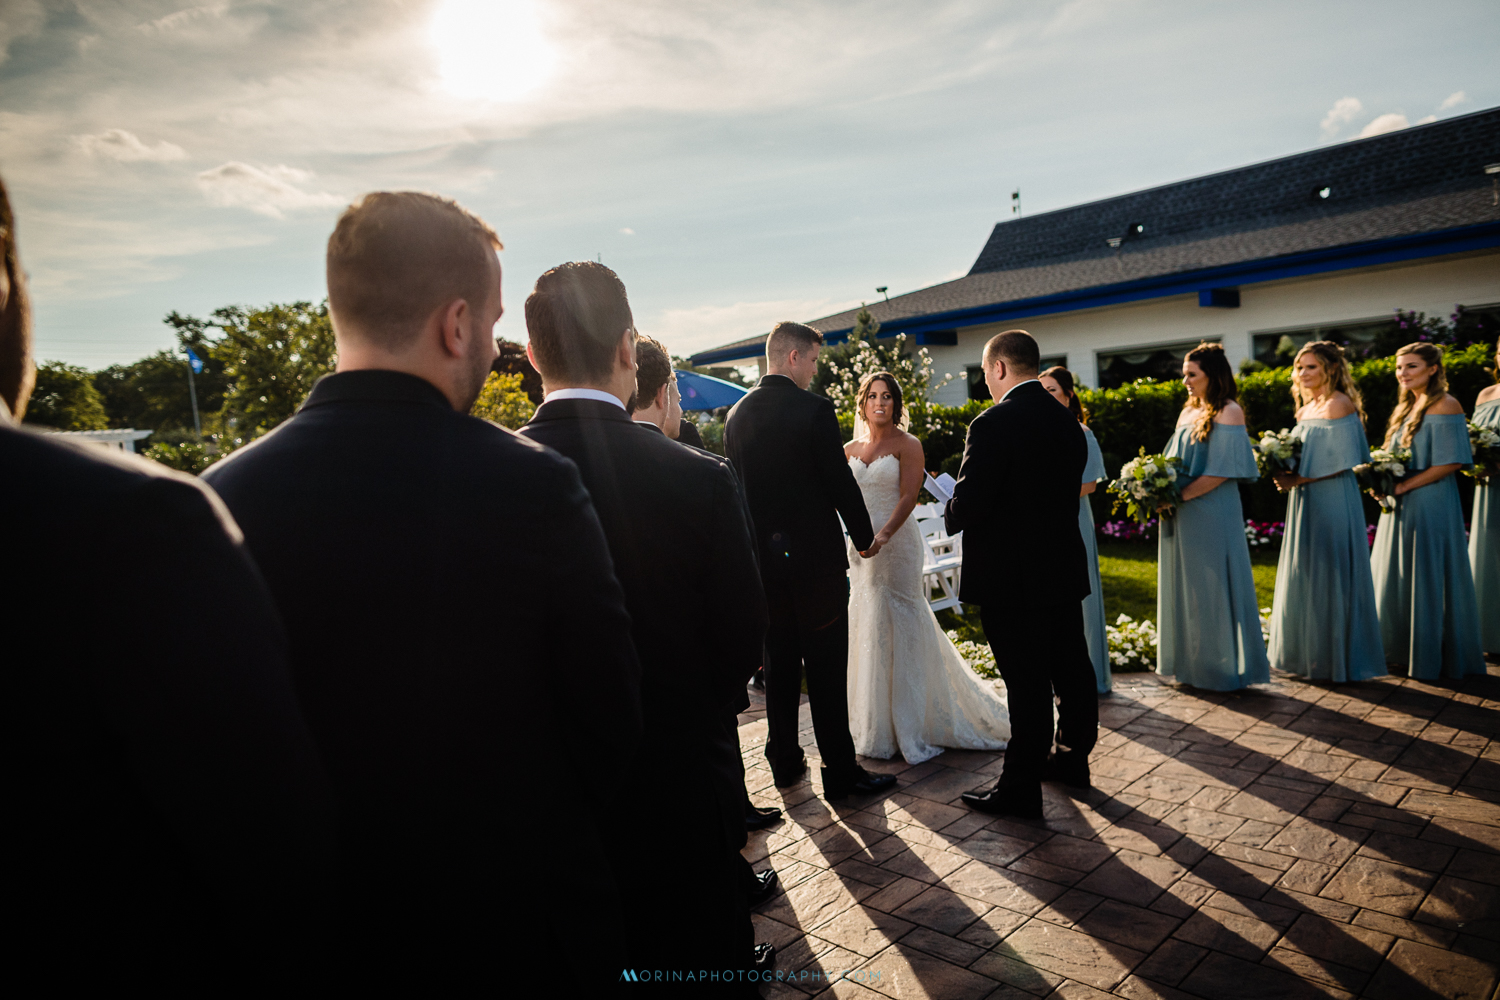 Amanda & Austin wedding at Crystal Point Yacht Club 74.jpg